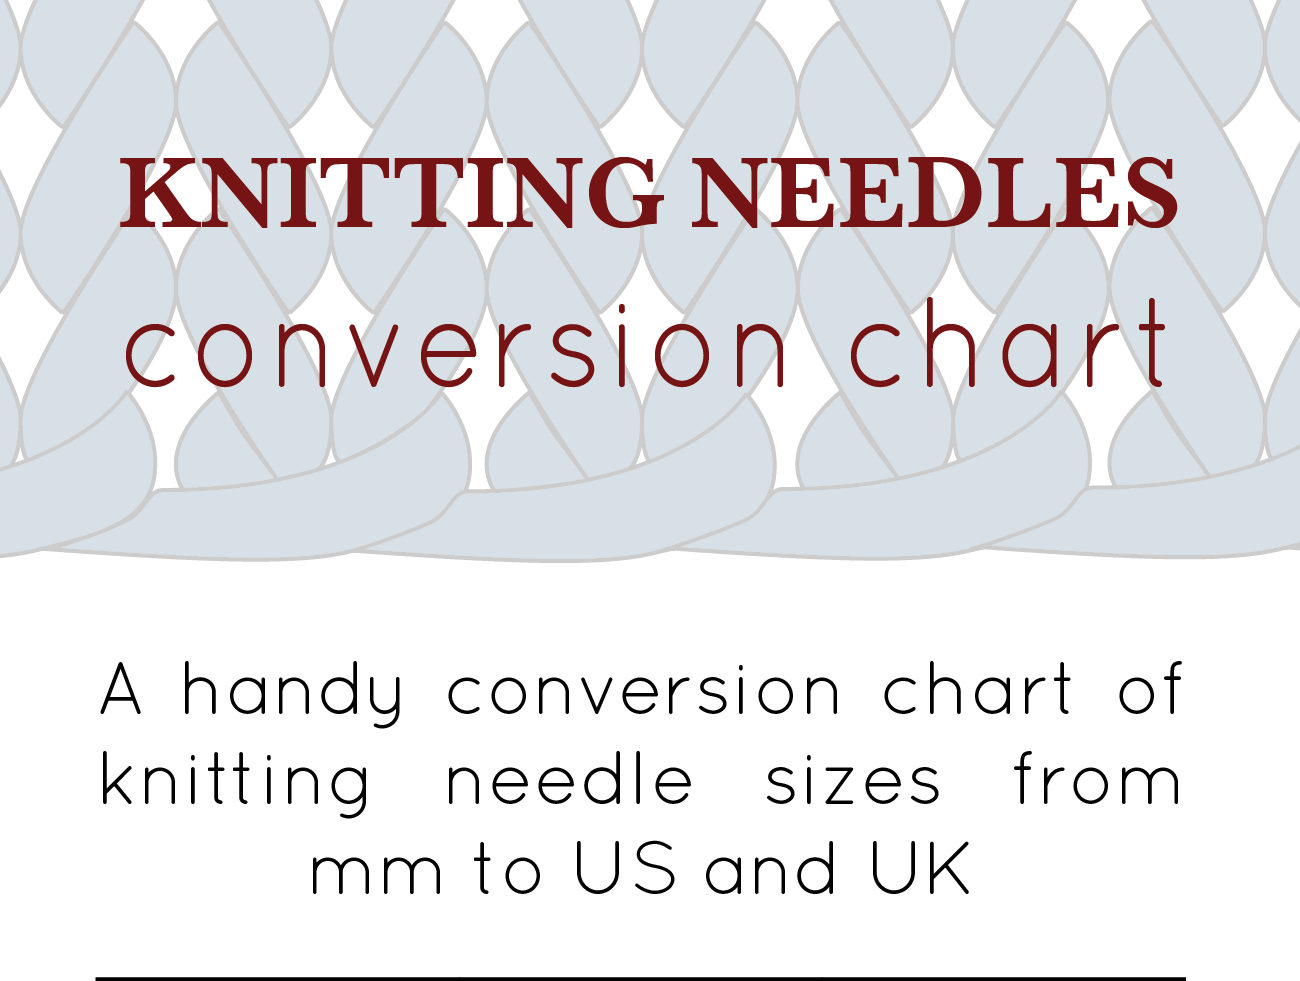 a handy conversion chart of knitting needle sizes